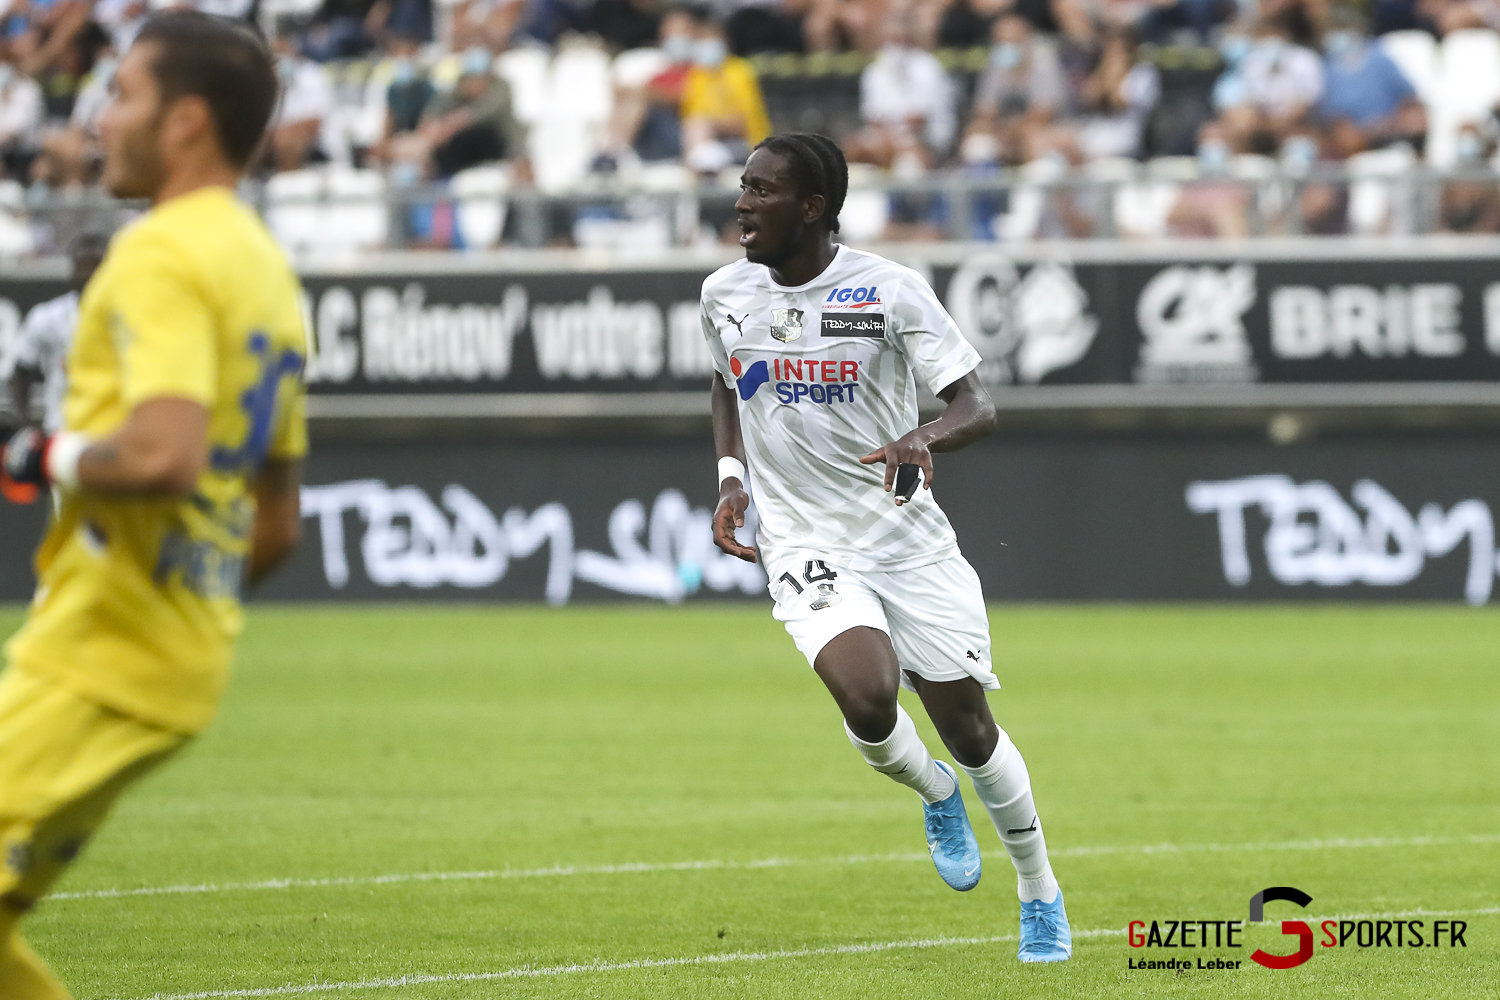 Football Ligue 2 Amiens Sc Vs Troyes Amical 0043 Leandre Leber Gazettesports